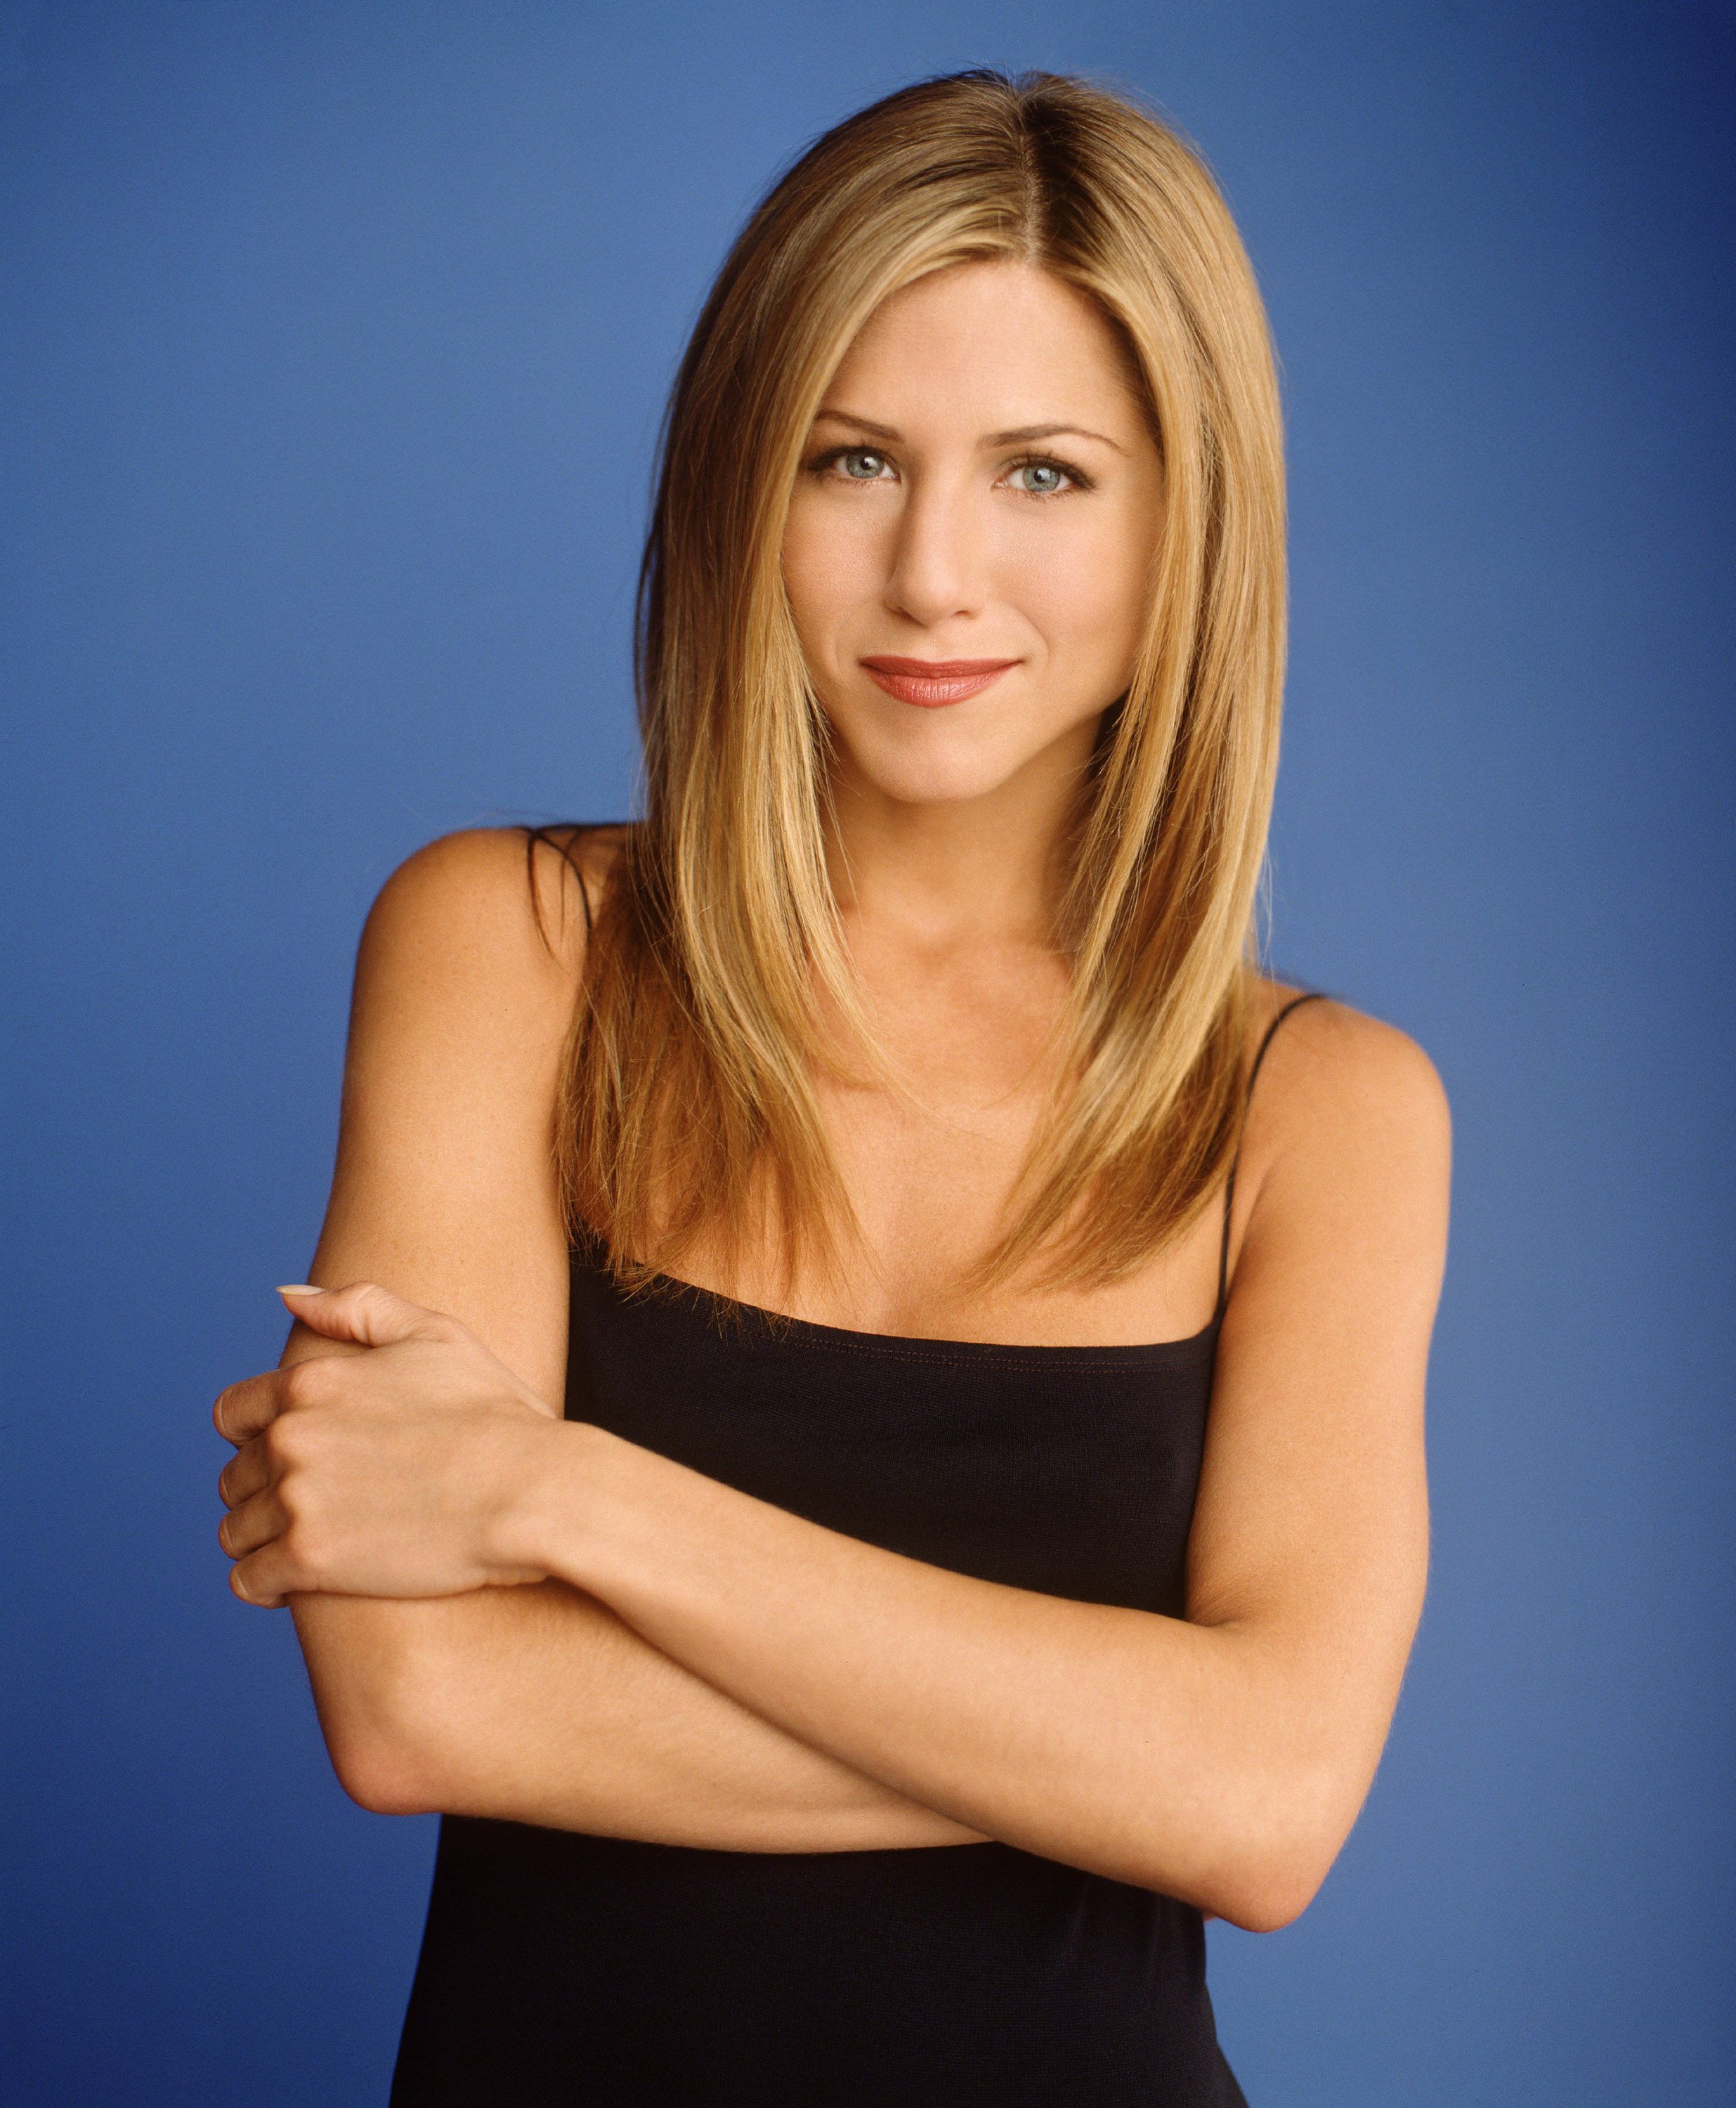 """Jennifer Aniston stars as Rachel Green on NBC's comedy series """"Friends."""" 